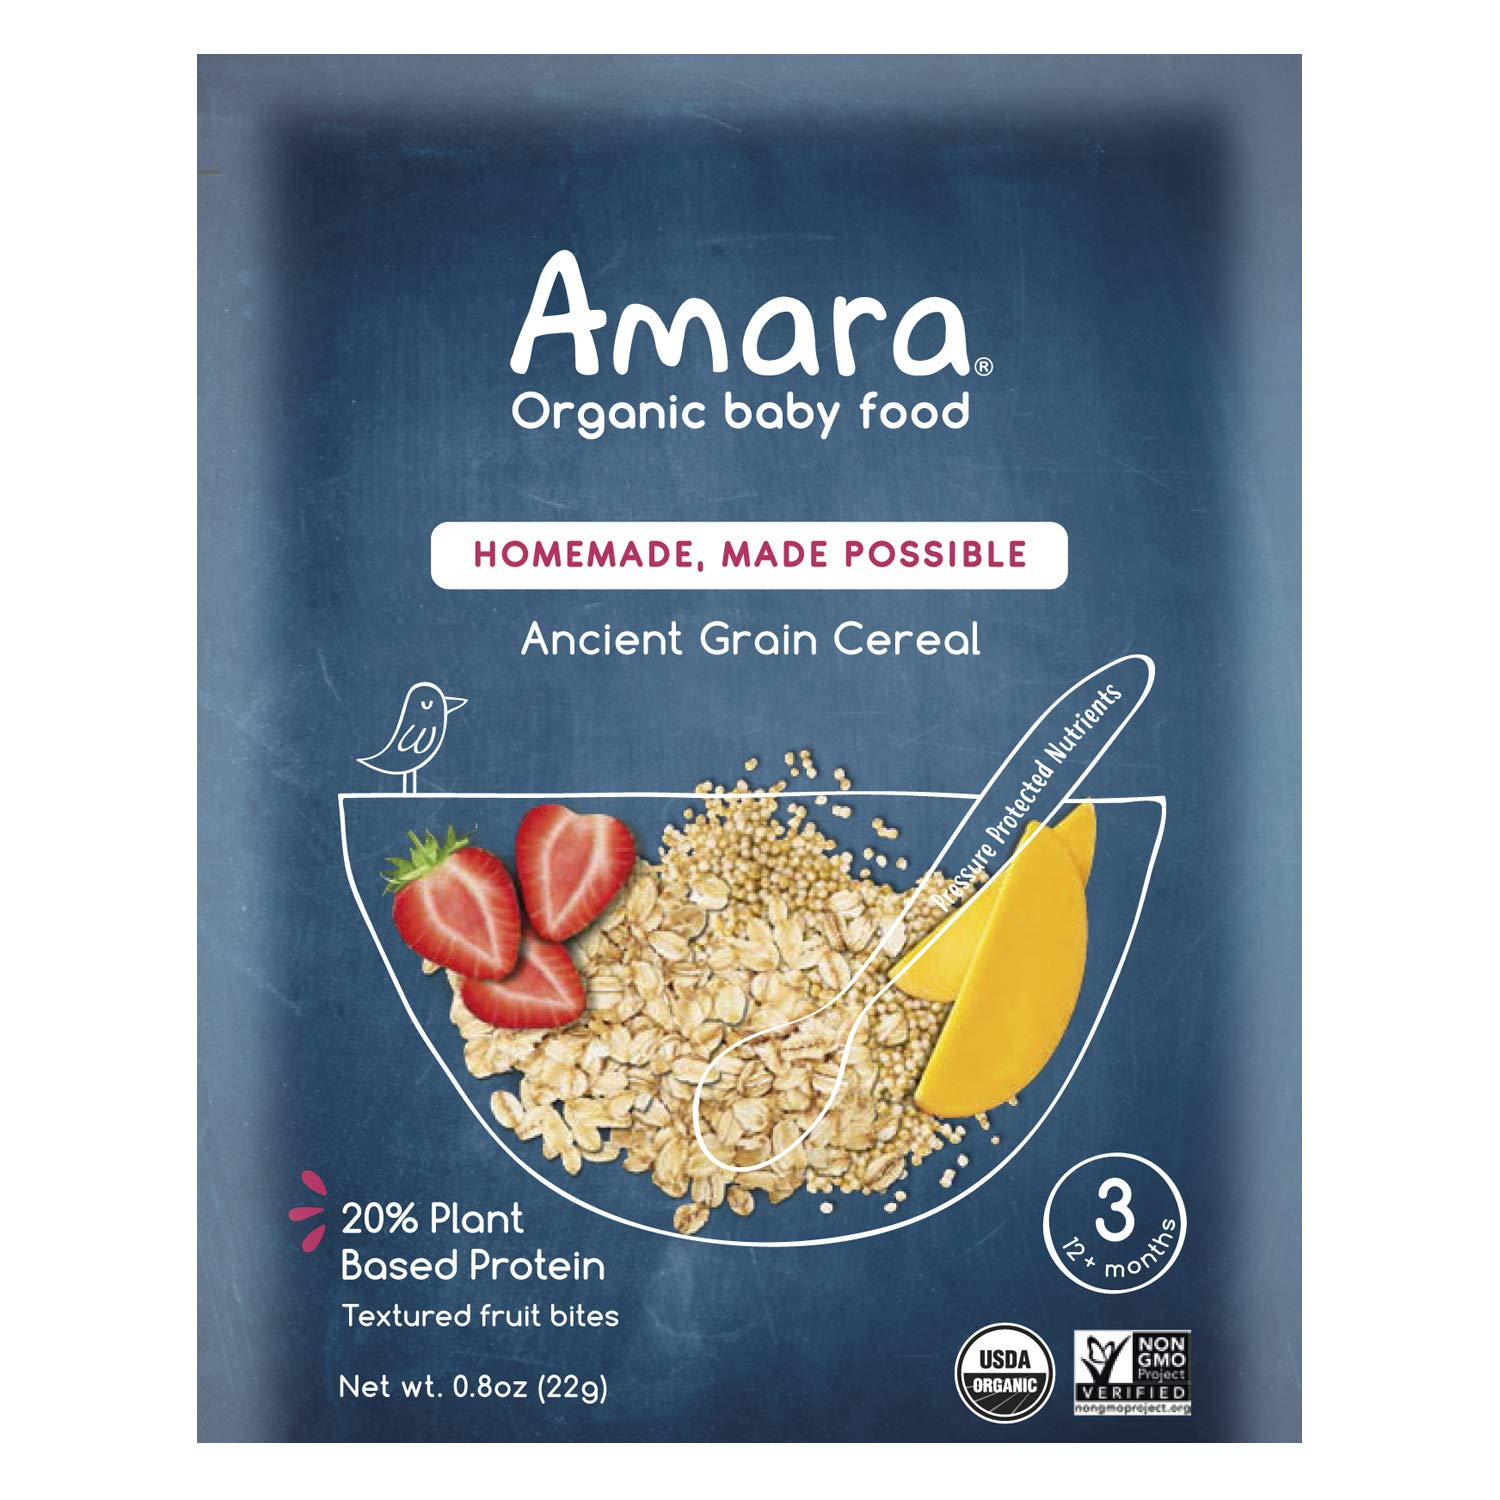 Amara Organic Baby Food | Ancient Grain Cereal | Homemade Made Possible | Mix with Breastmilk, Formula or Water | Certified Organic, Non-GMO, No Added Sugars | Stage 3 - Babies 12 Months+ | 5 Pouches